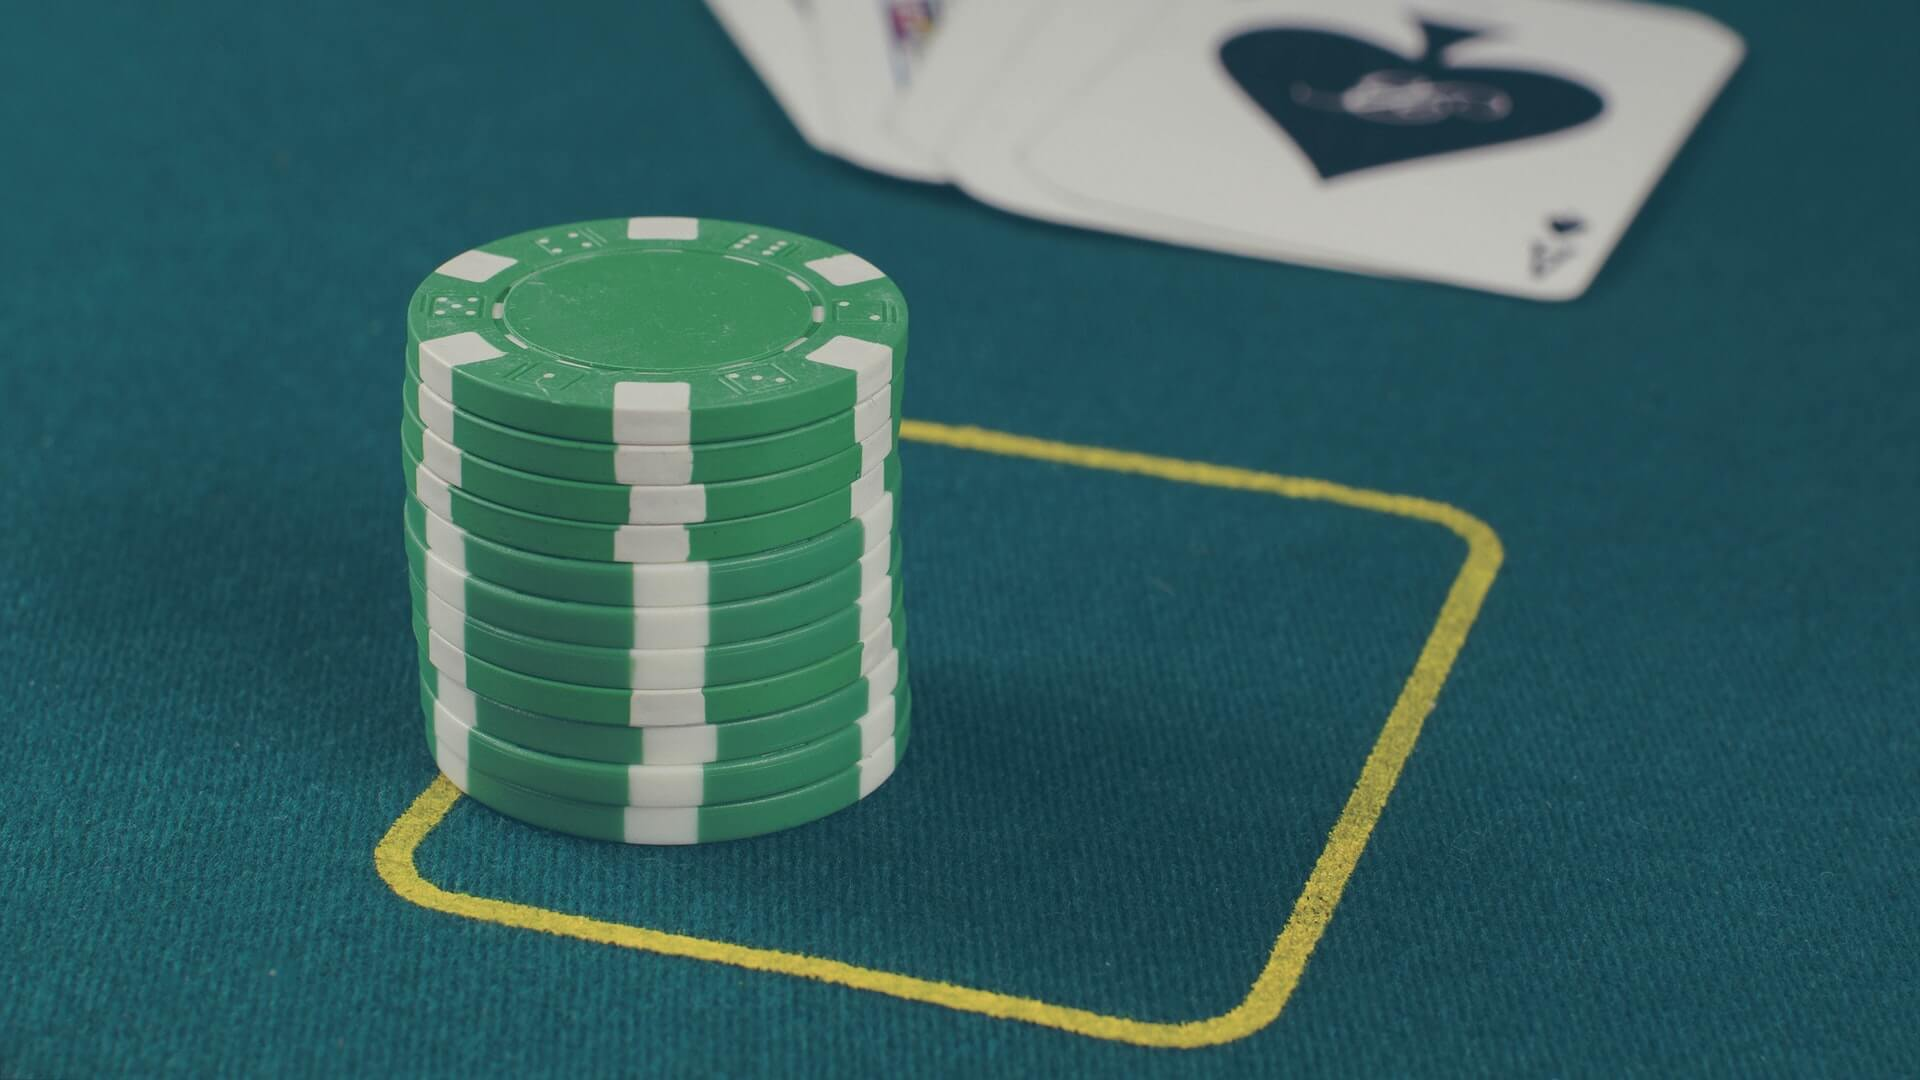 Texas Holdem Overview